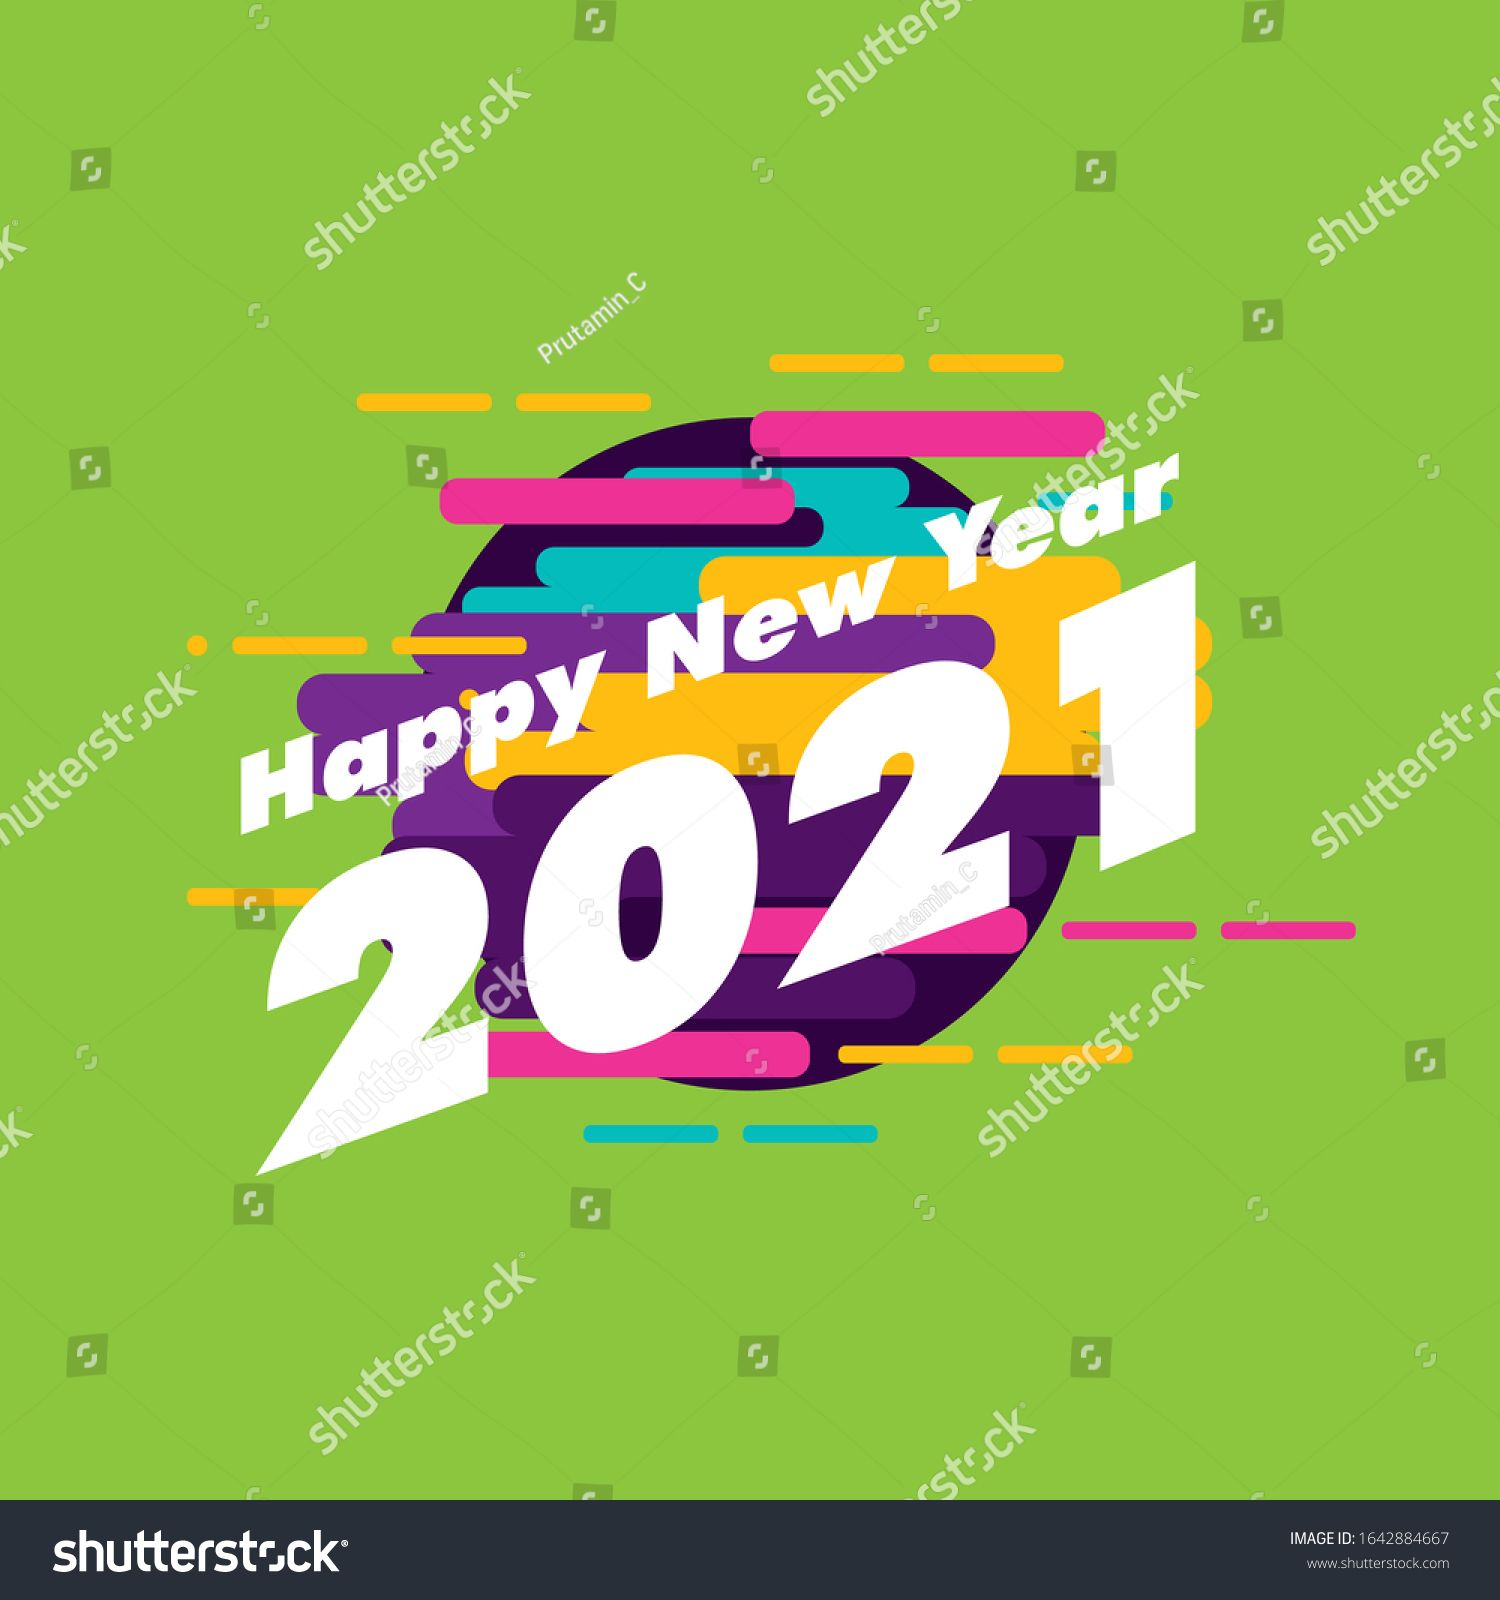 happy new year 2021, beautiful greeting card background or